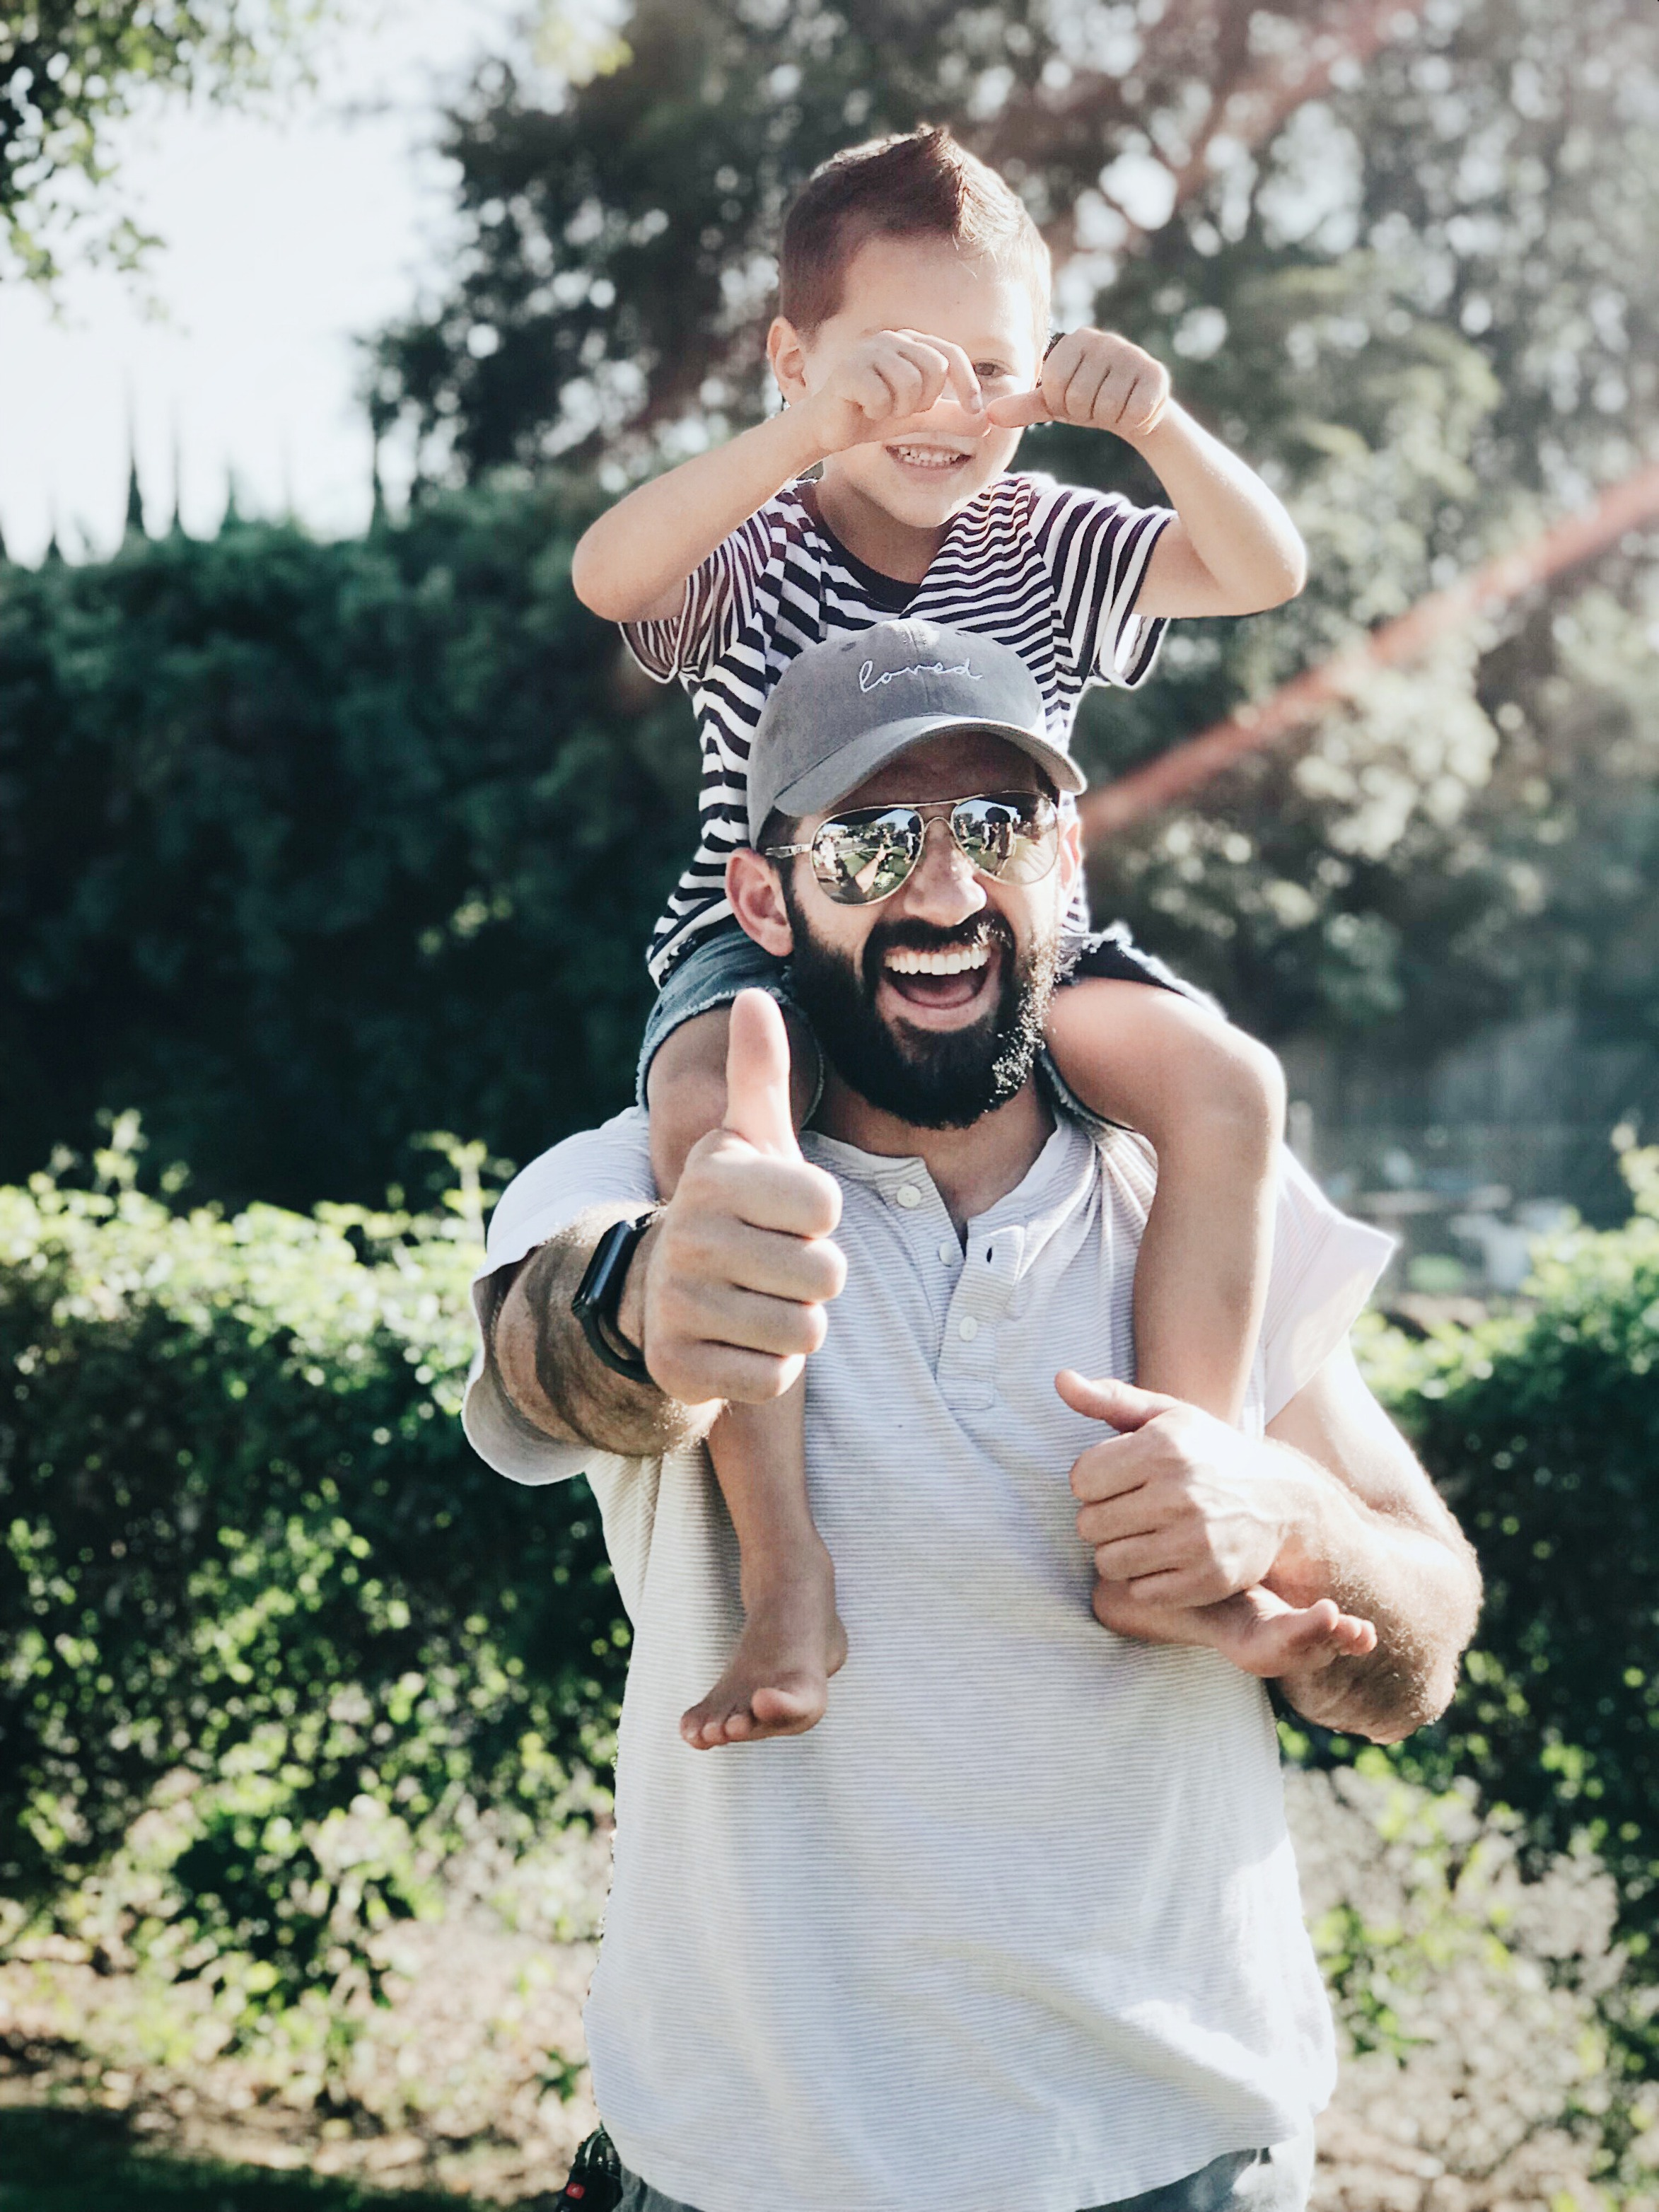 A dad wearing sunglasses holds his son on his shoulders, he smiles and gives the camera a thumbs up. Following is a list of the best experiences to give Dad.